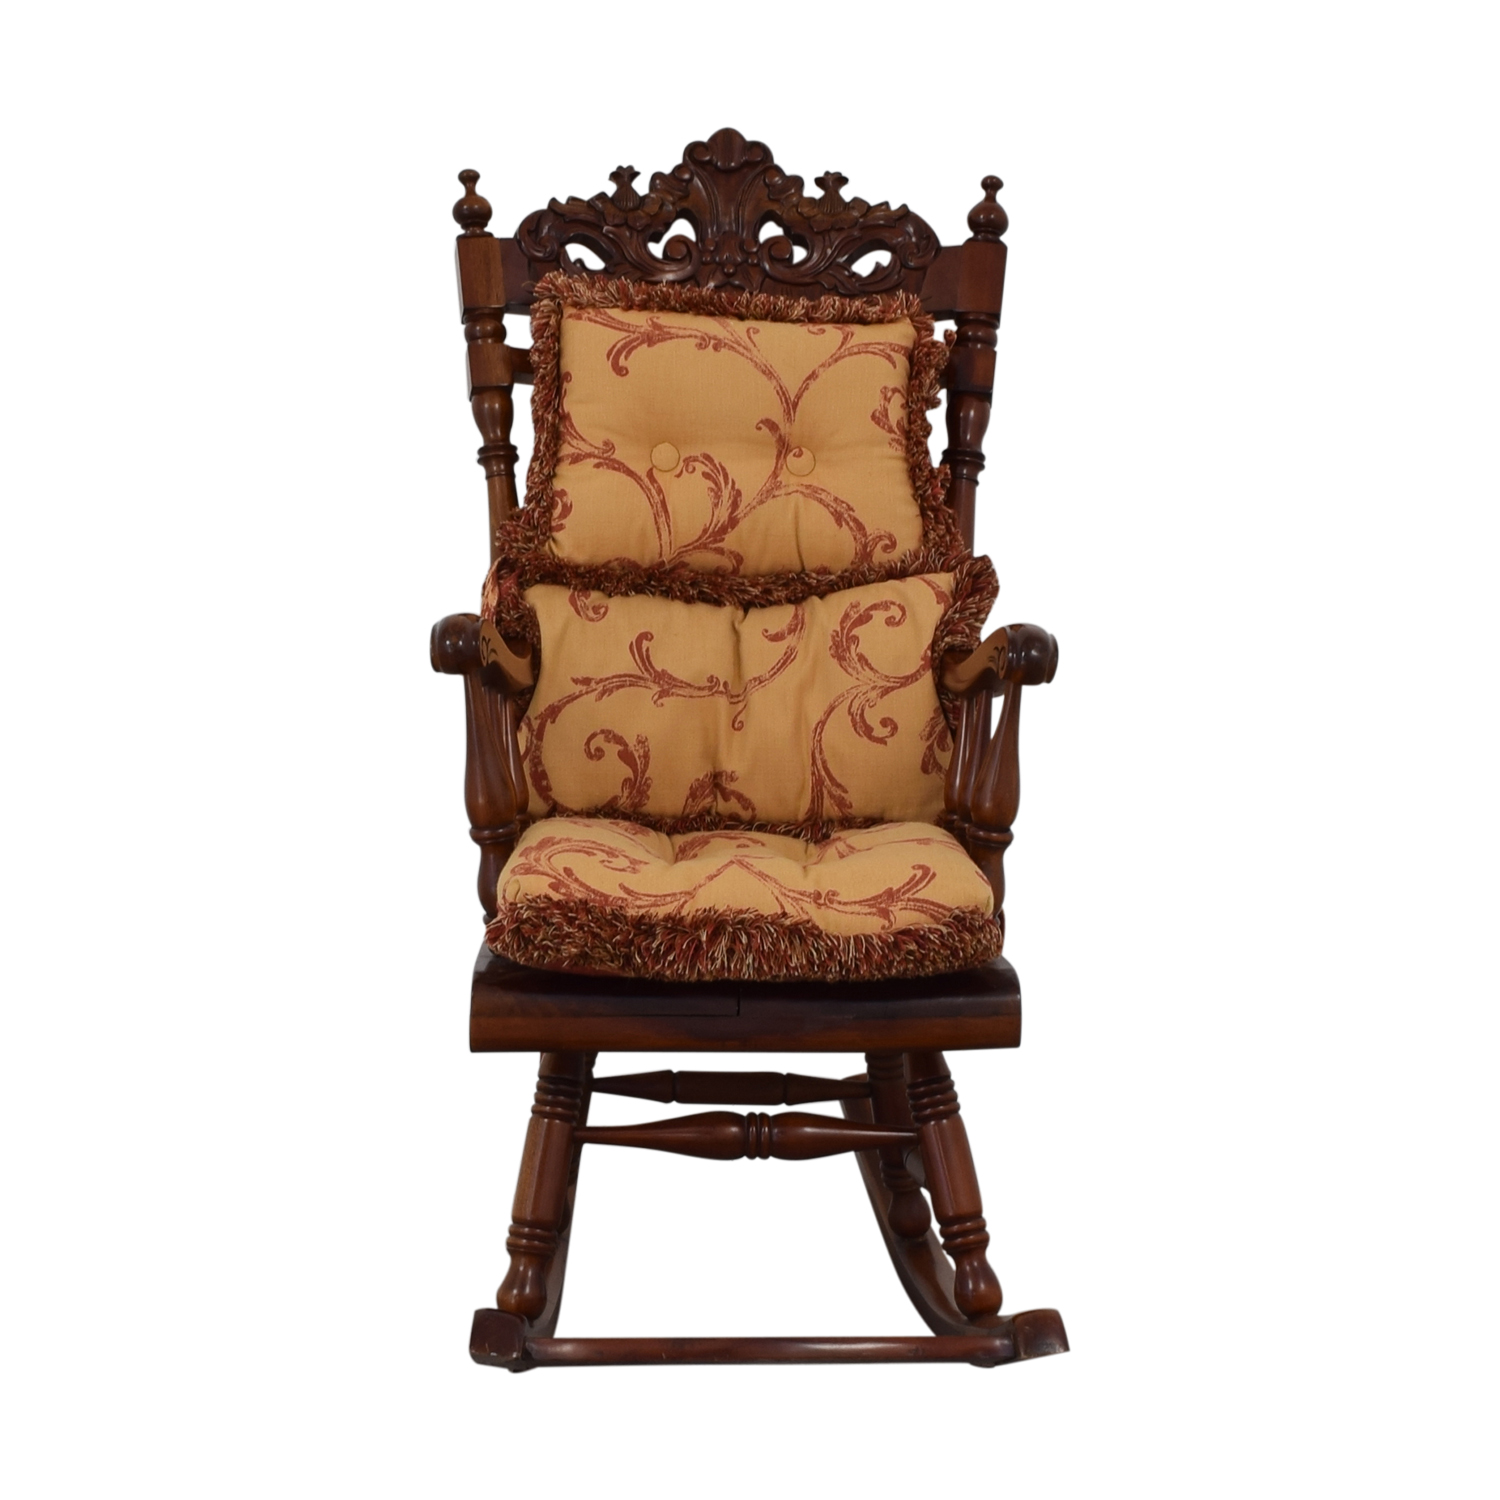 Carved Wood Rocking Chair with Cushions Accent Chairs